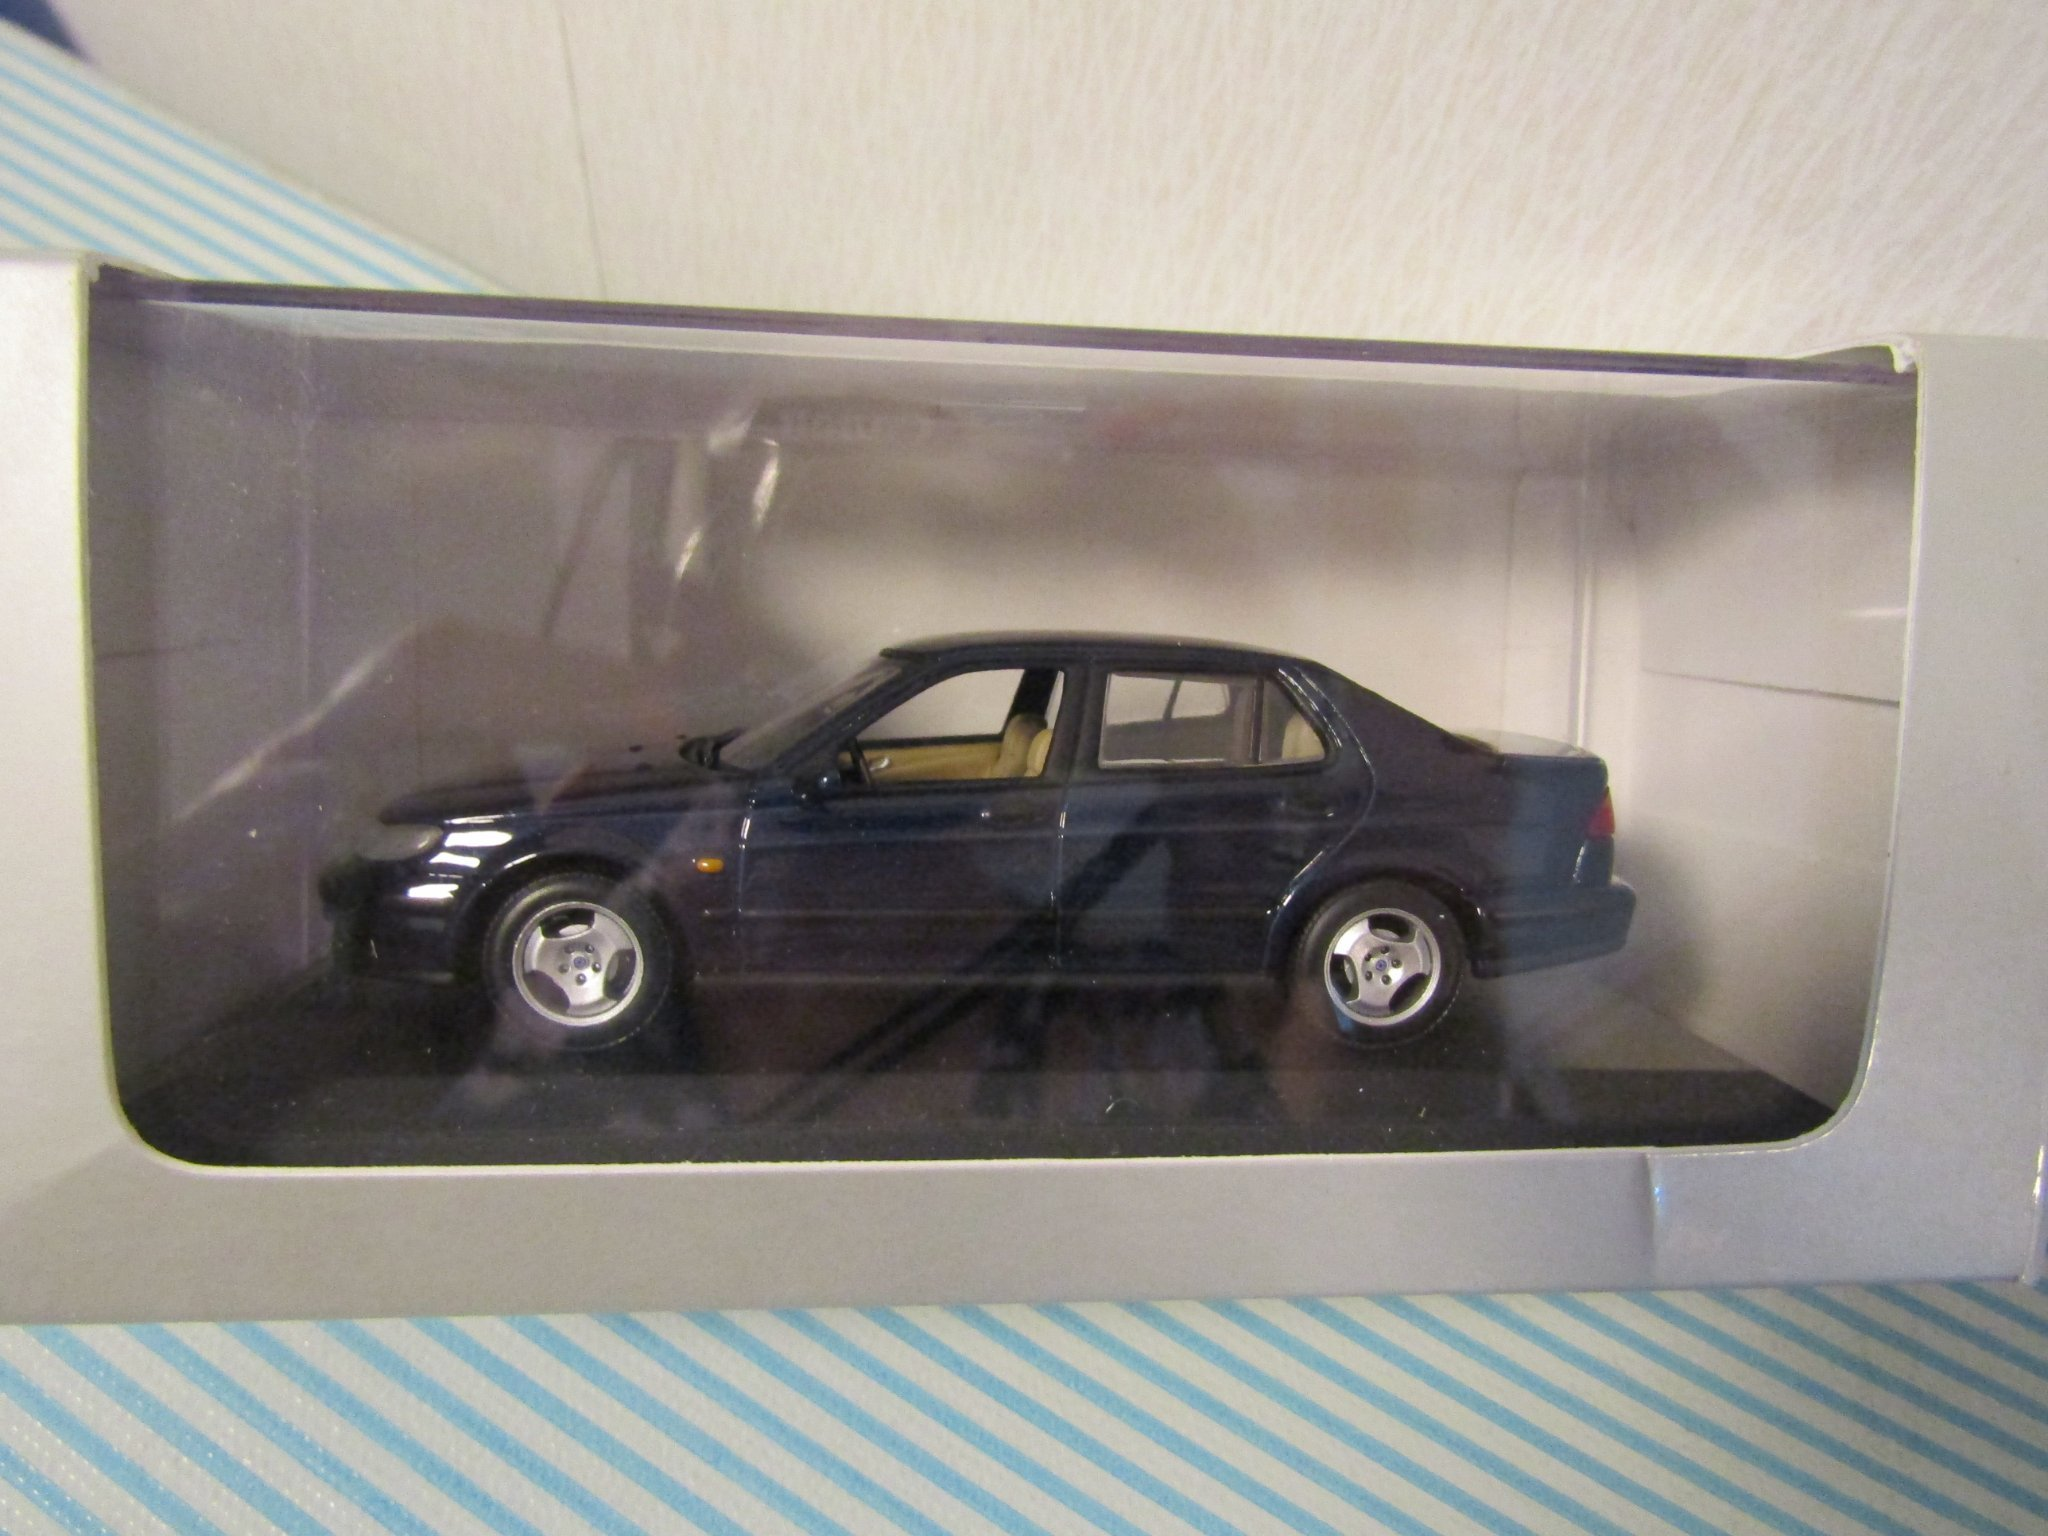 1;43 SAAB 9-´5 svart - Saab Mod. Collection Minichamps + box o plastkåpa